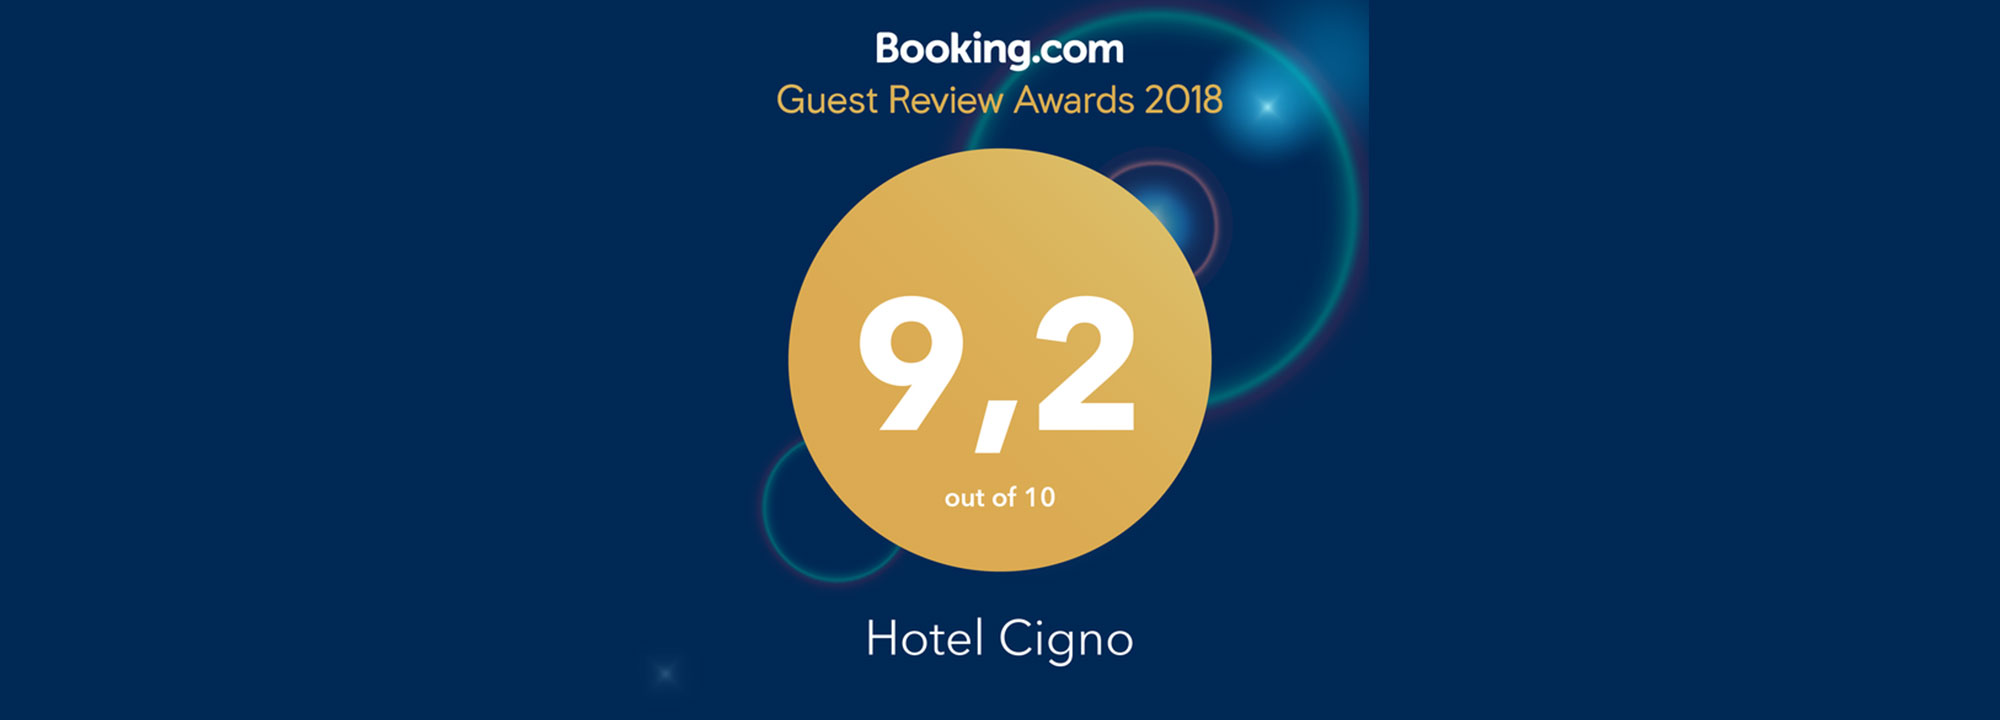 Hotel Cigno Booking Award 2018